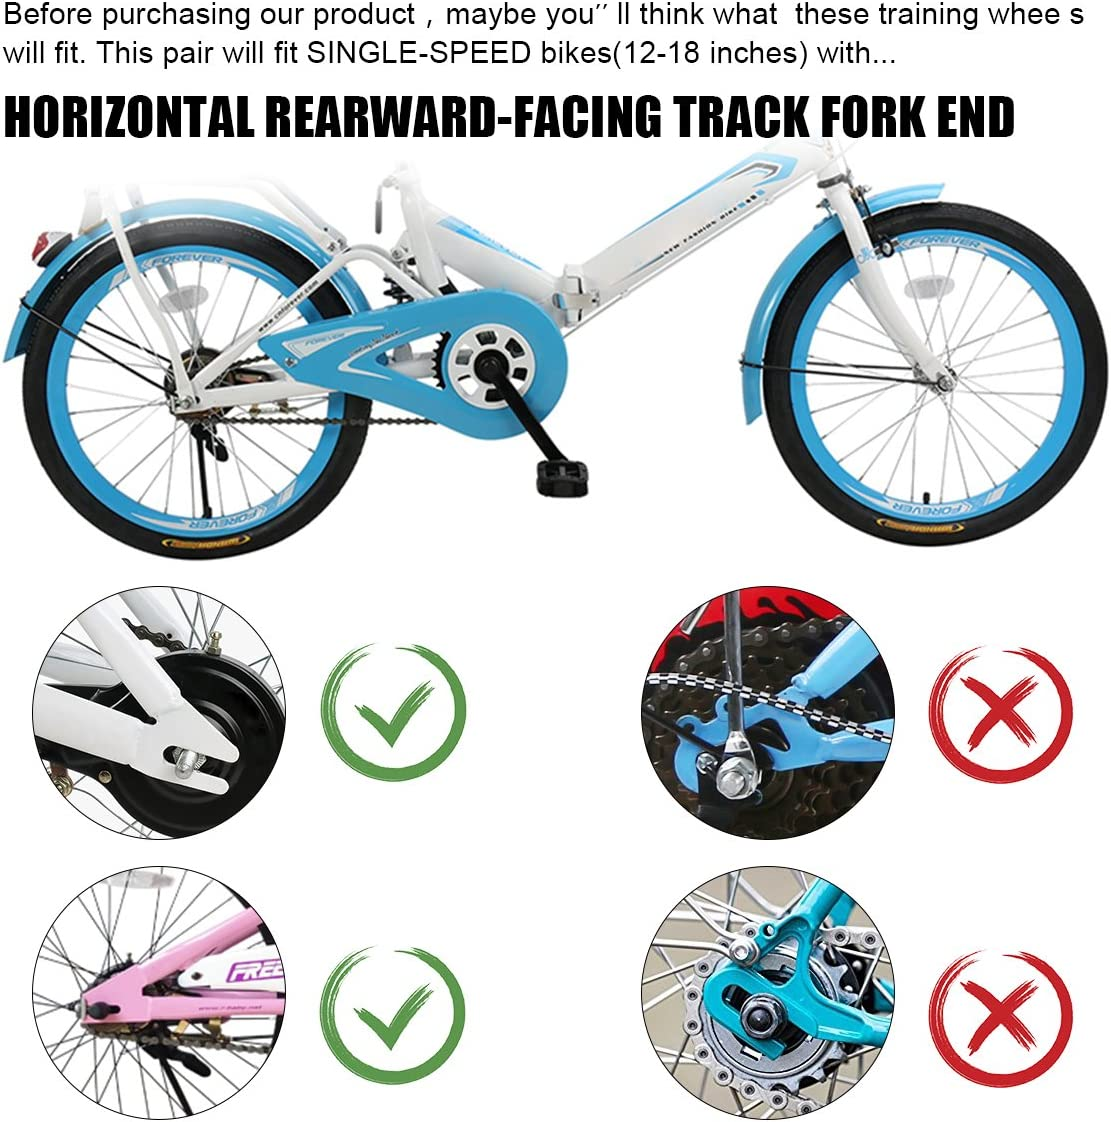 ZOSEN Training Wheels Bicycle Stabilizers for Kids Bike Support Rear Wheels for 12 14 16 18 20 Inch Kids Bicycle